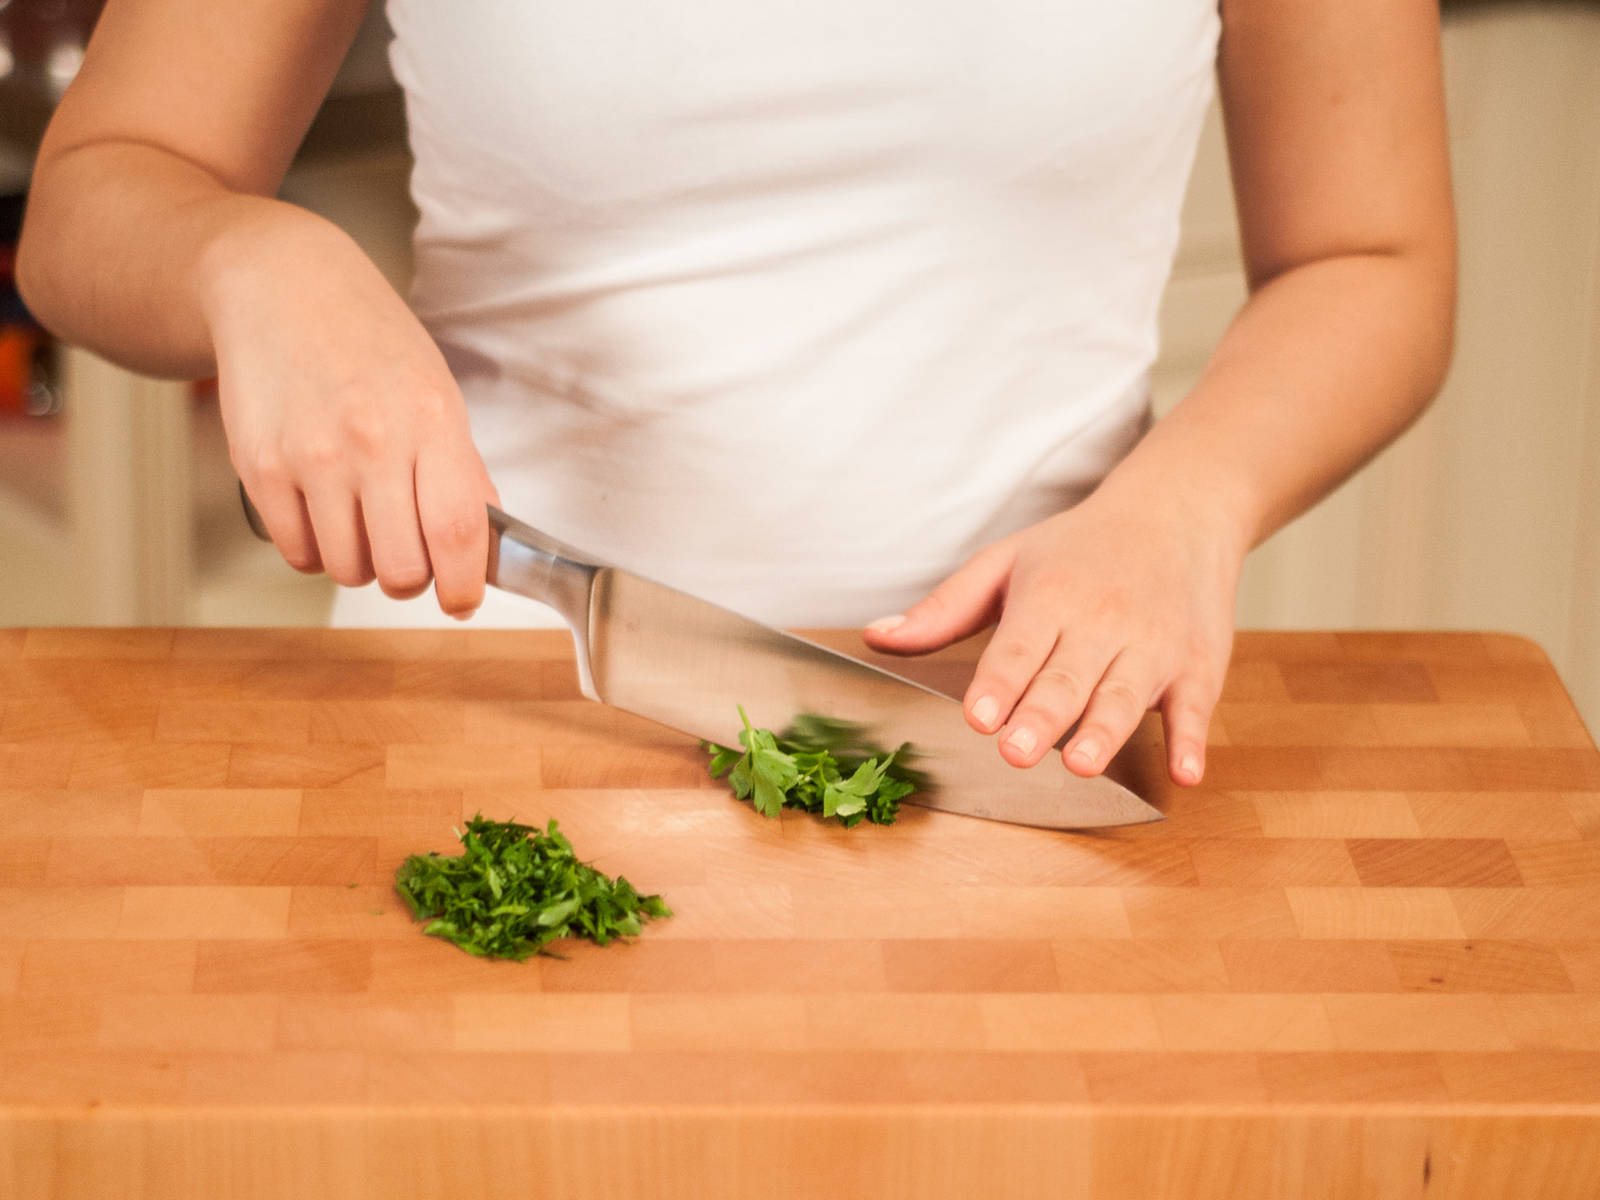 In the meantime chop parsley.